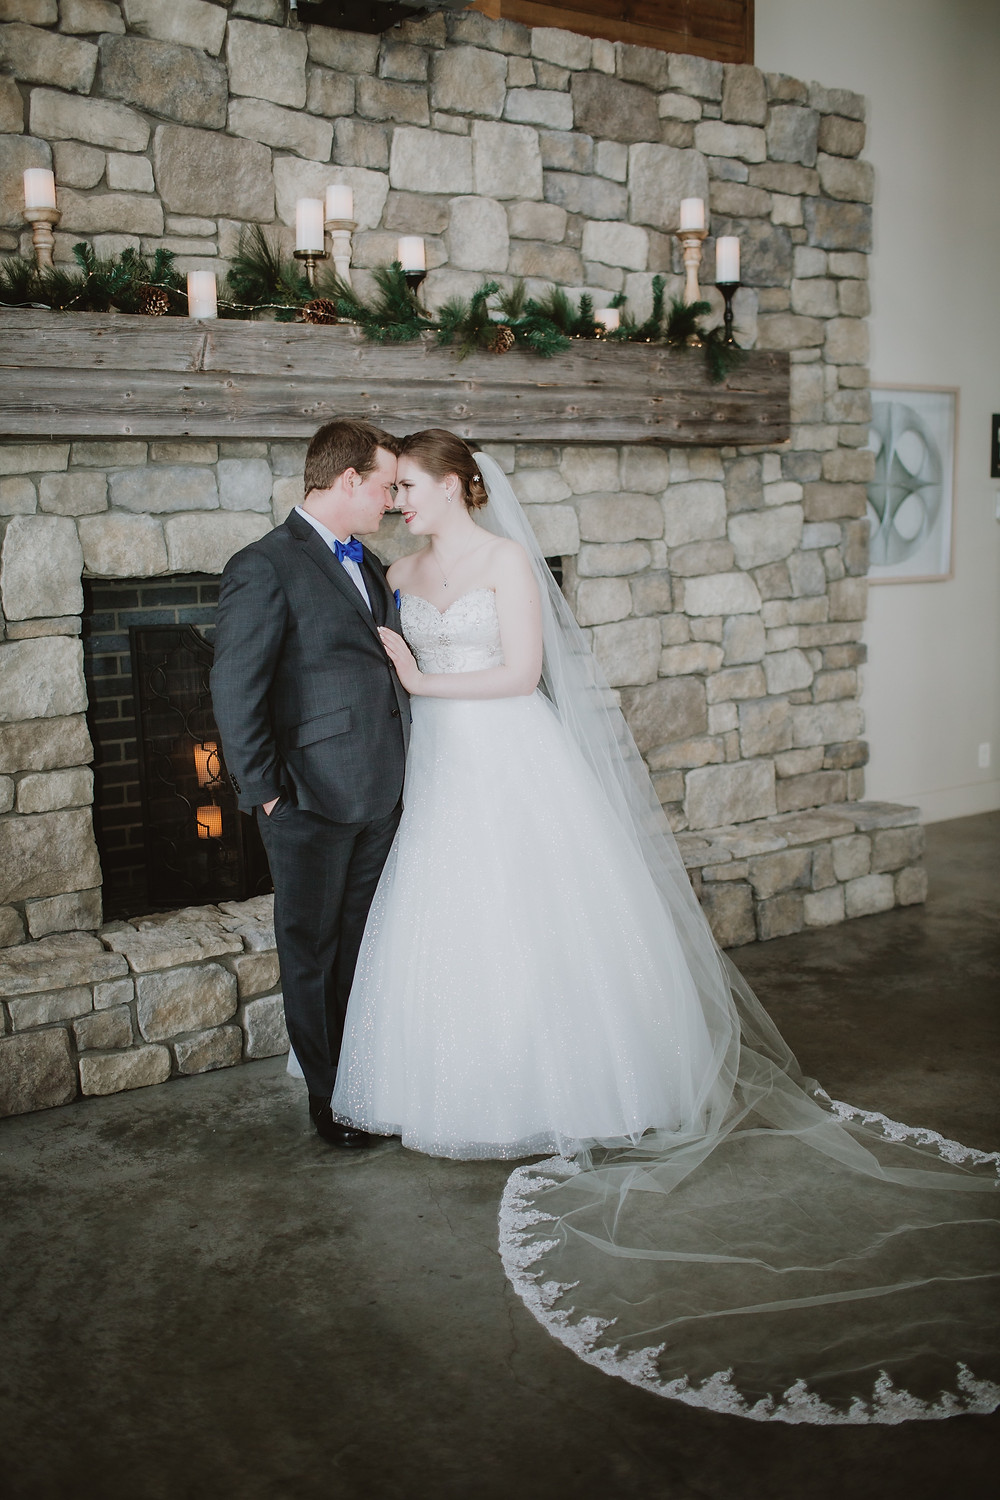 Canadian bride and groom pose in front of fireplace for wedding portraits.